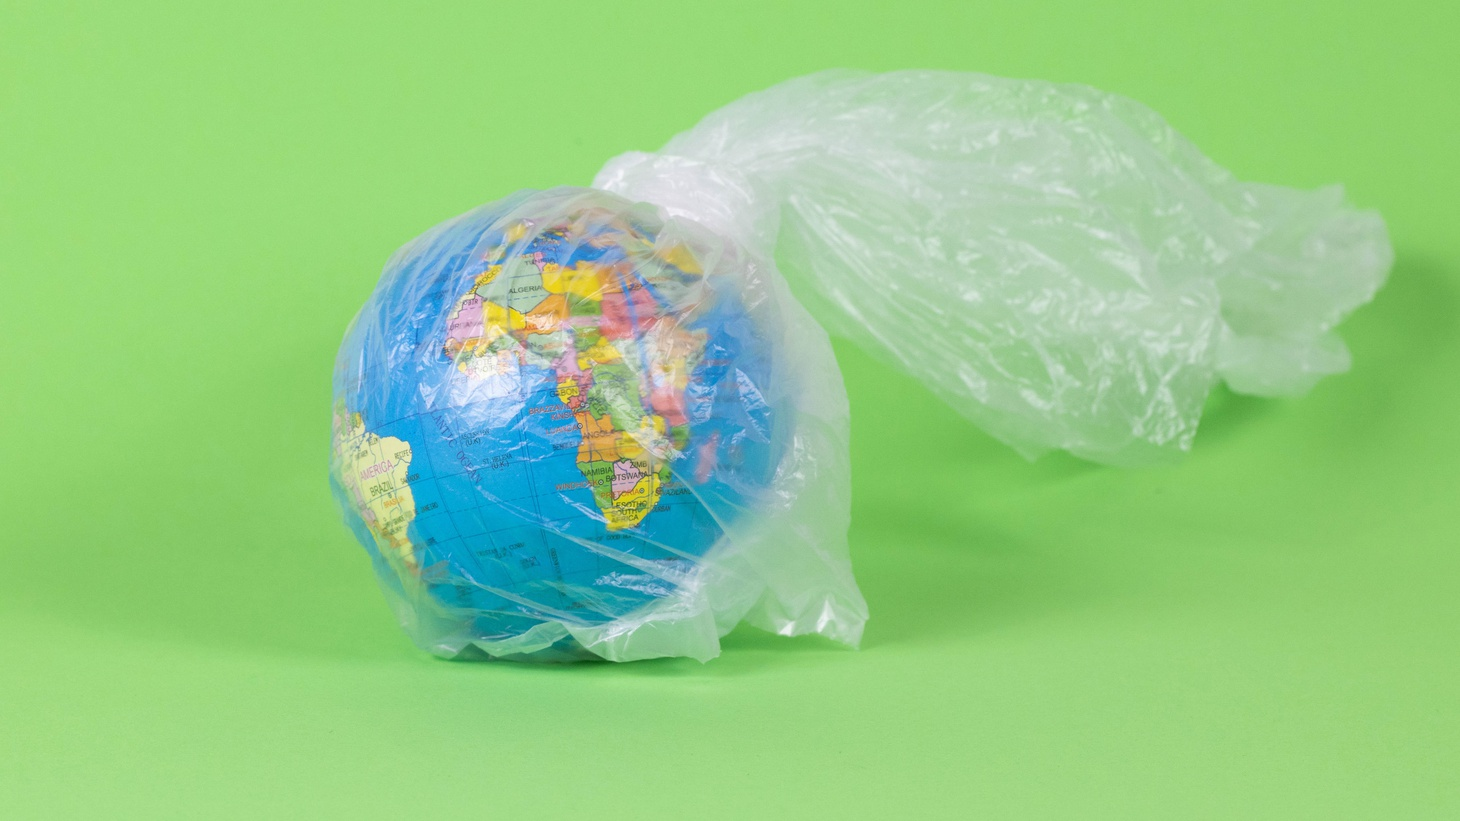 Earth in plastic bag.